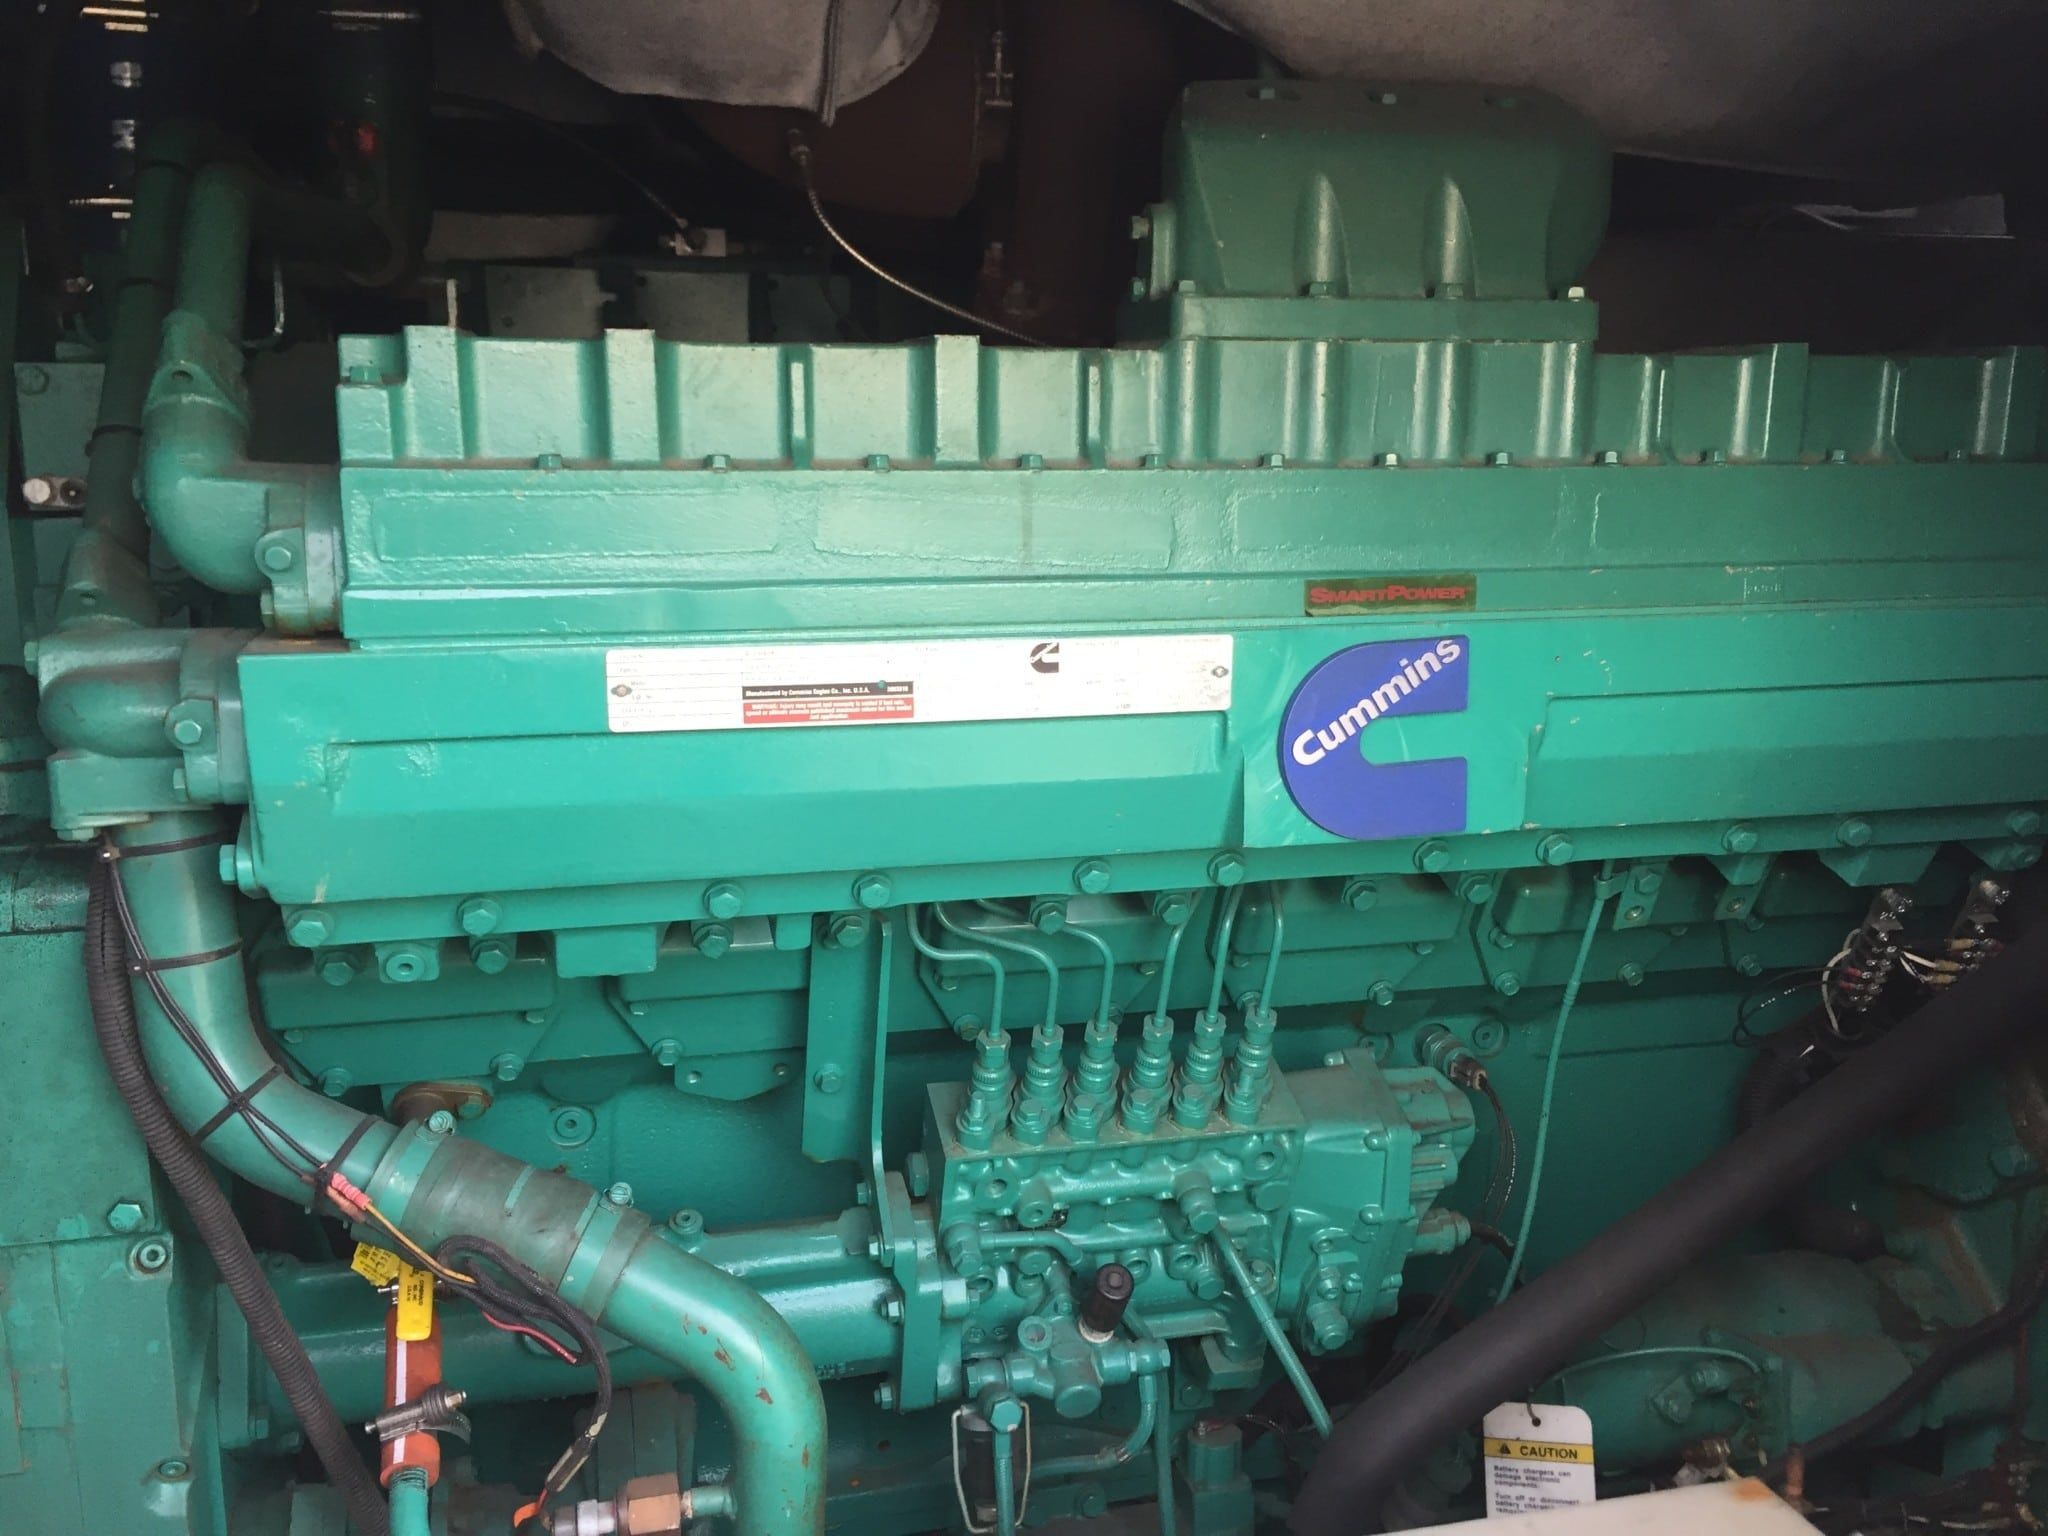 1000 Kw Cummins Diesel Portable Generator Just In Unit Just In Additional Information Coming Soon Manufacturer Cummins Diesel Cummins Cummins Engine